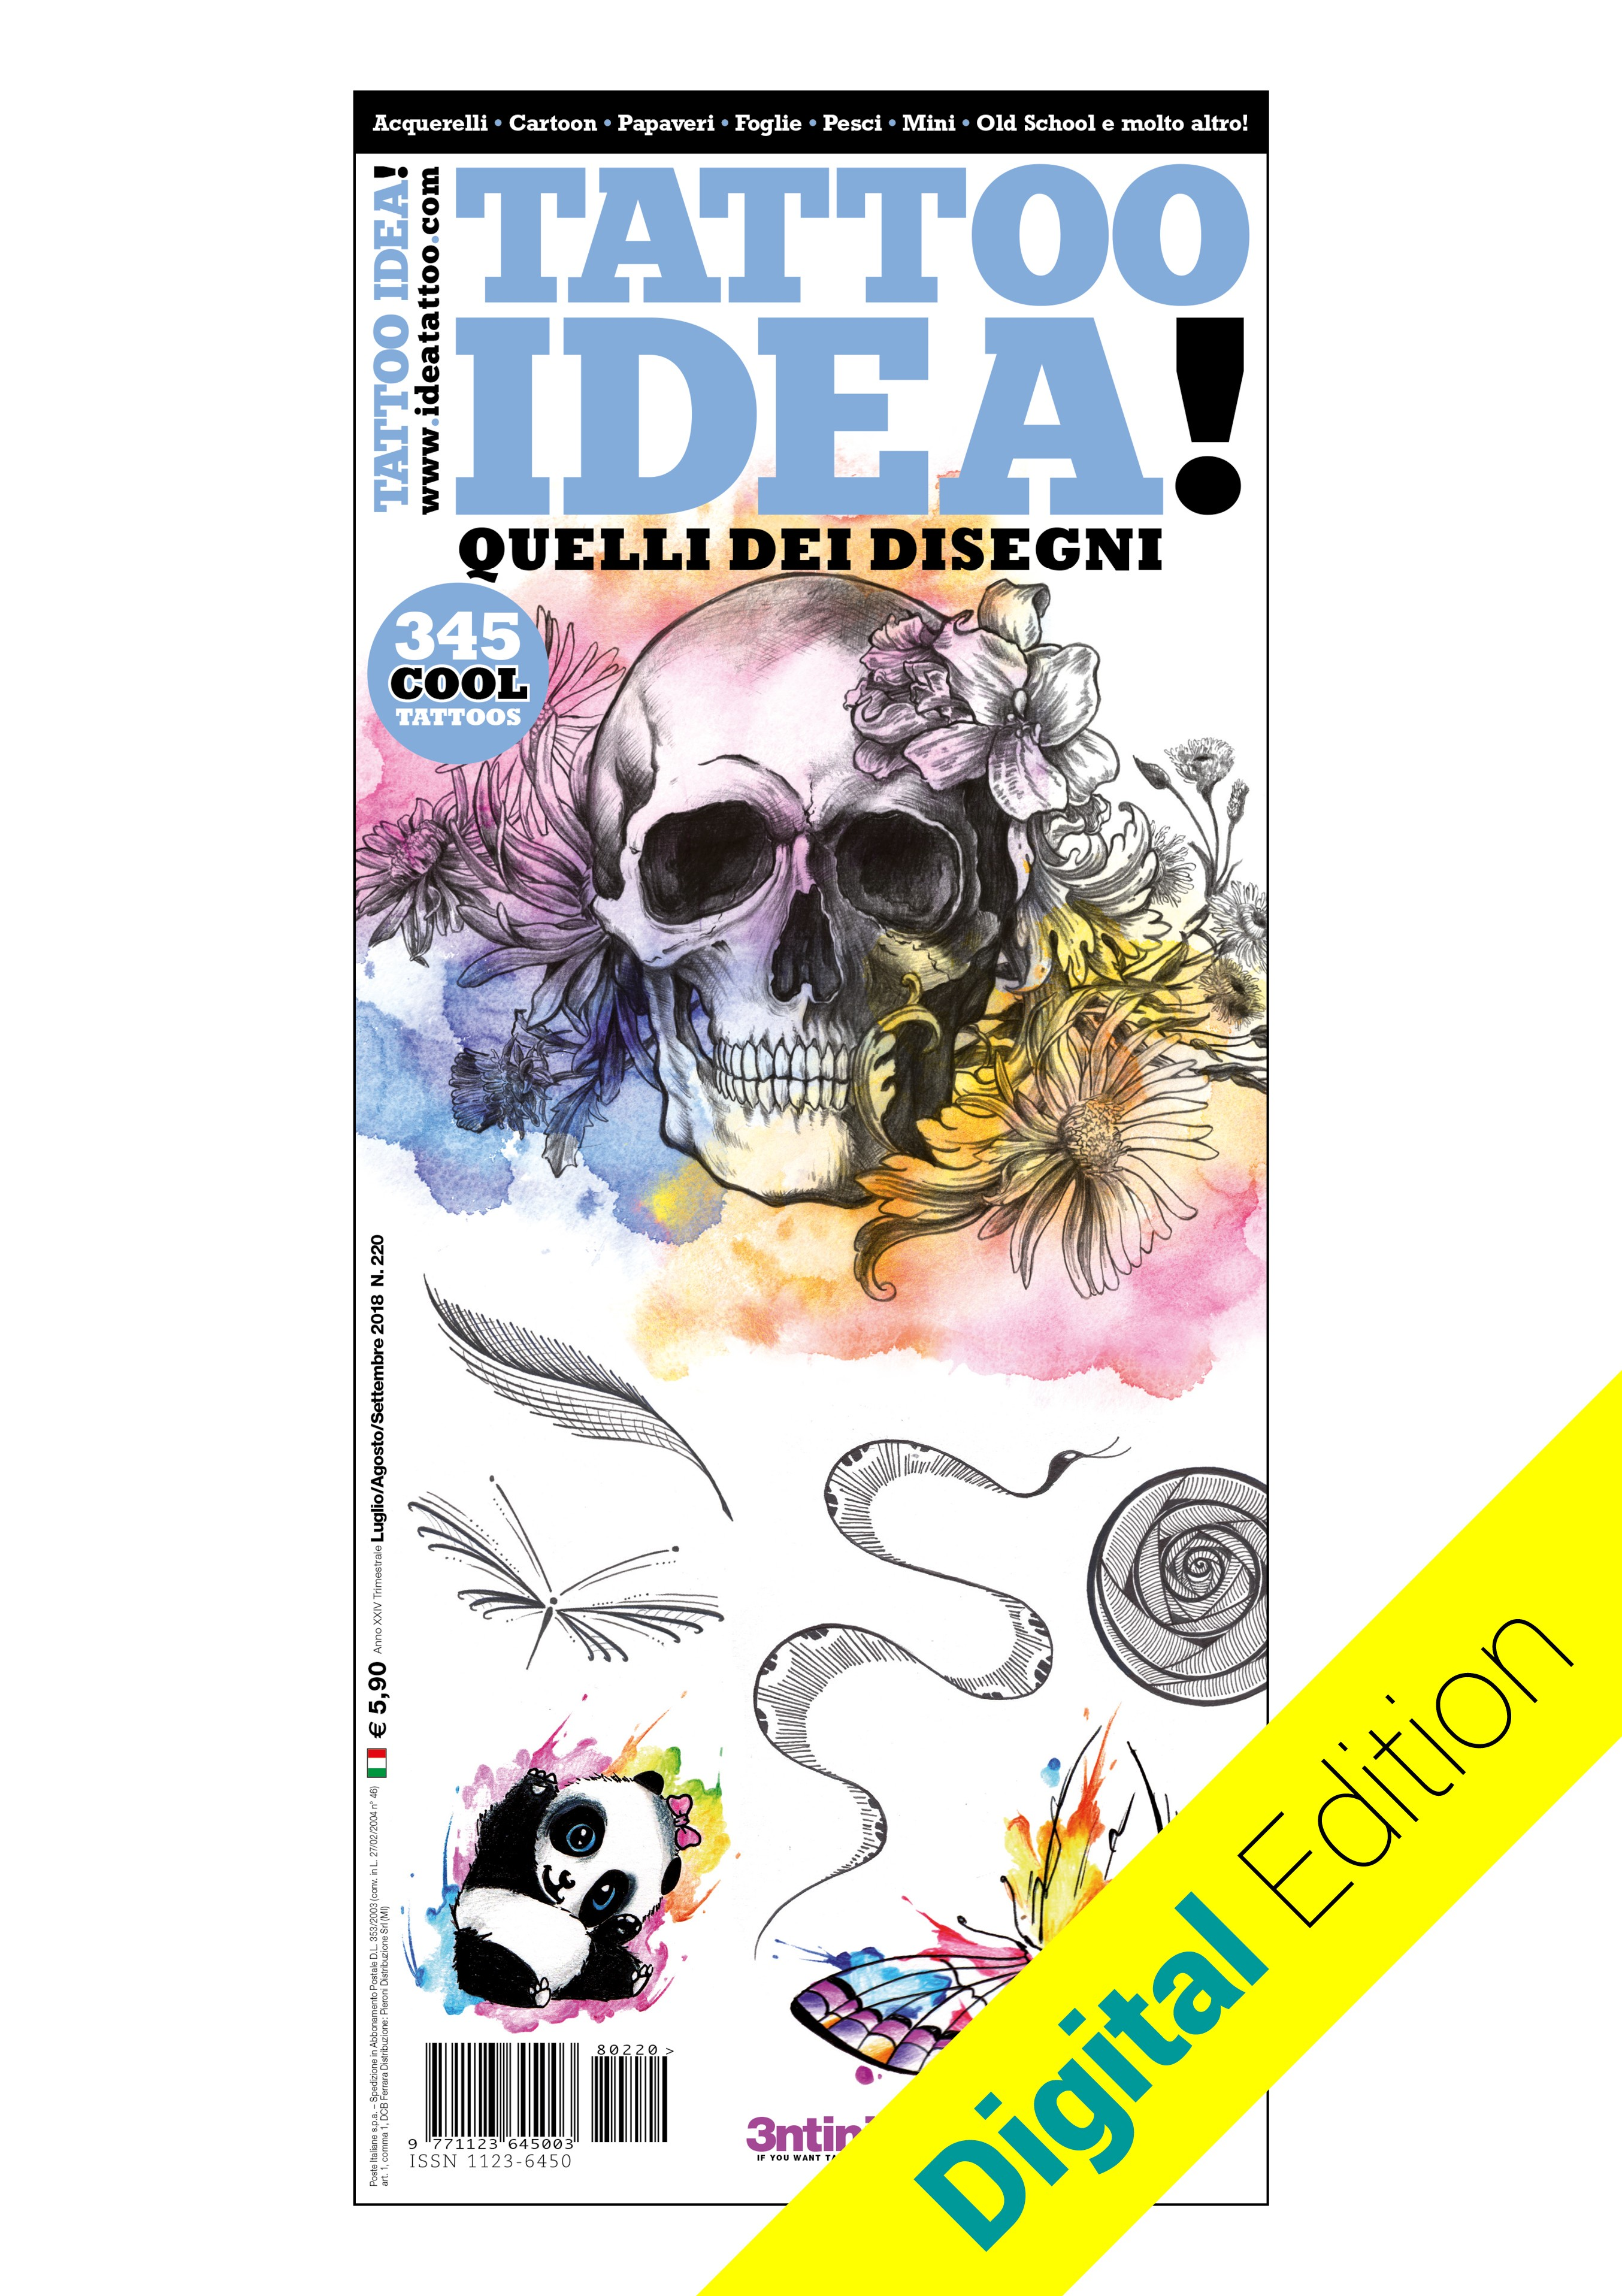 Idea Tattoo 220 Juli/August/September 2018 [digital edition]